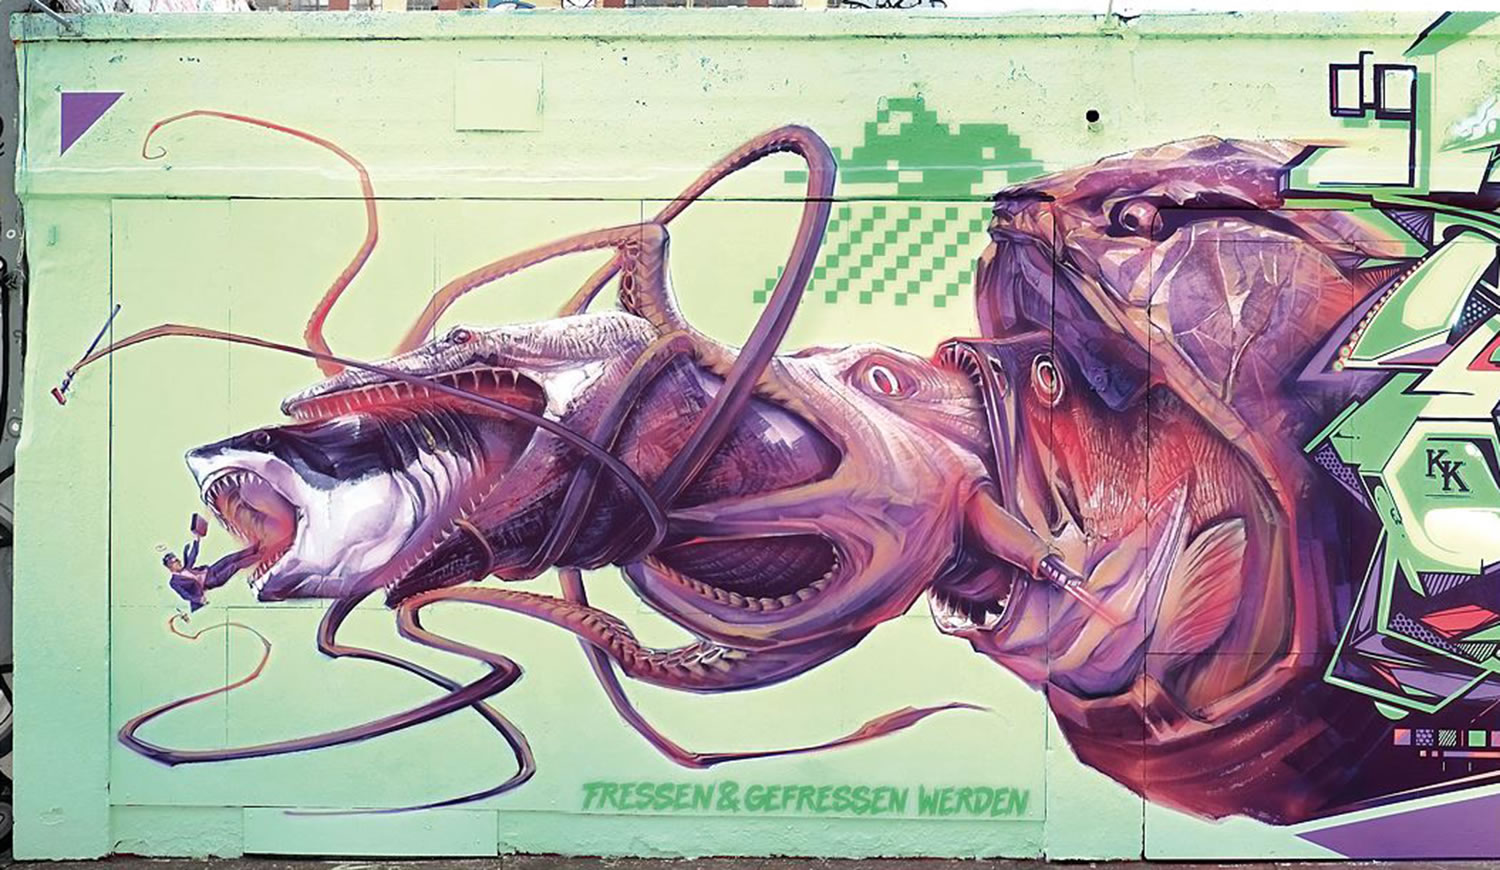 octopus eats shark. food chain, graffiti